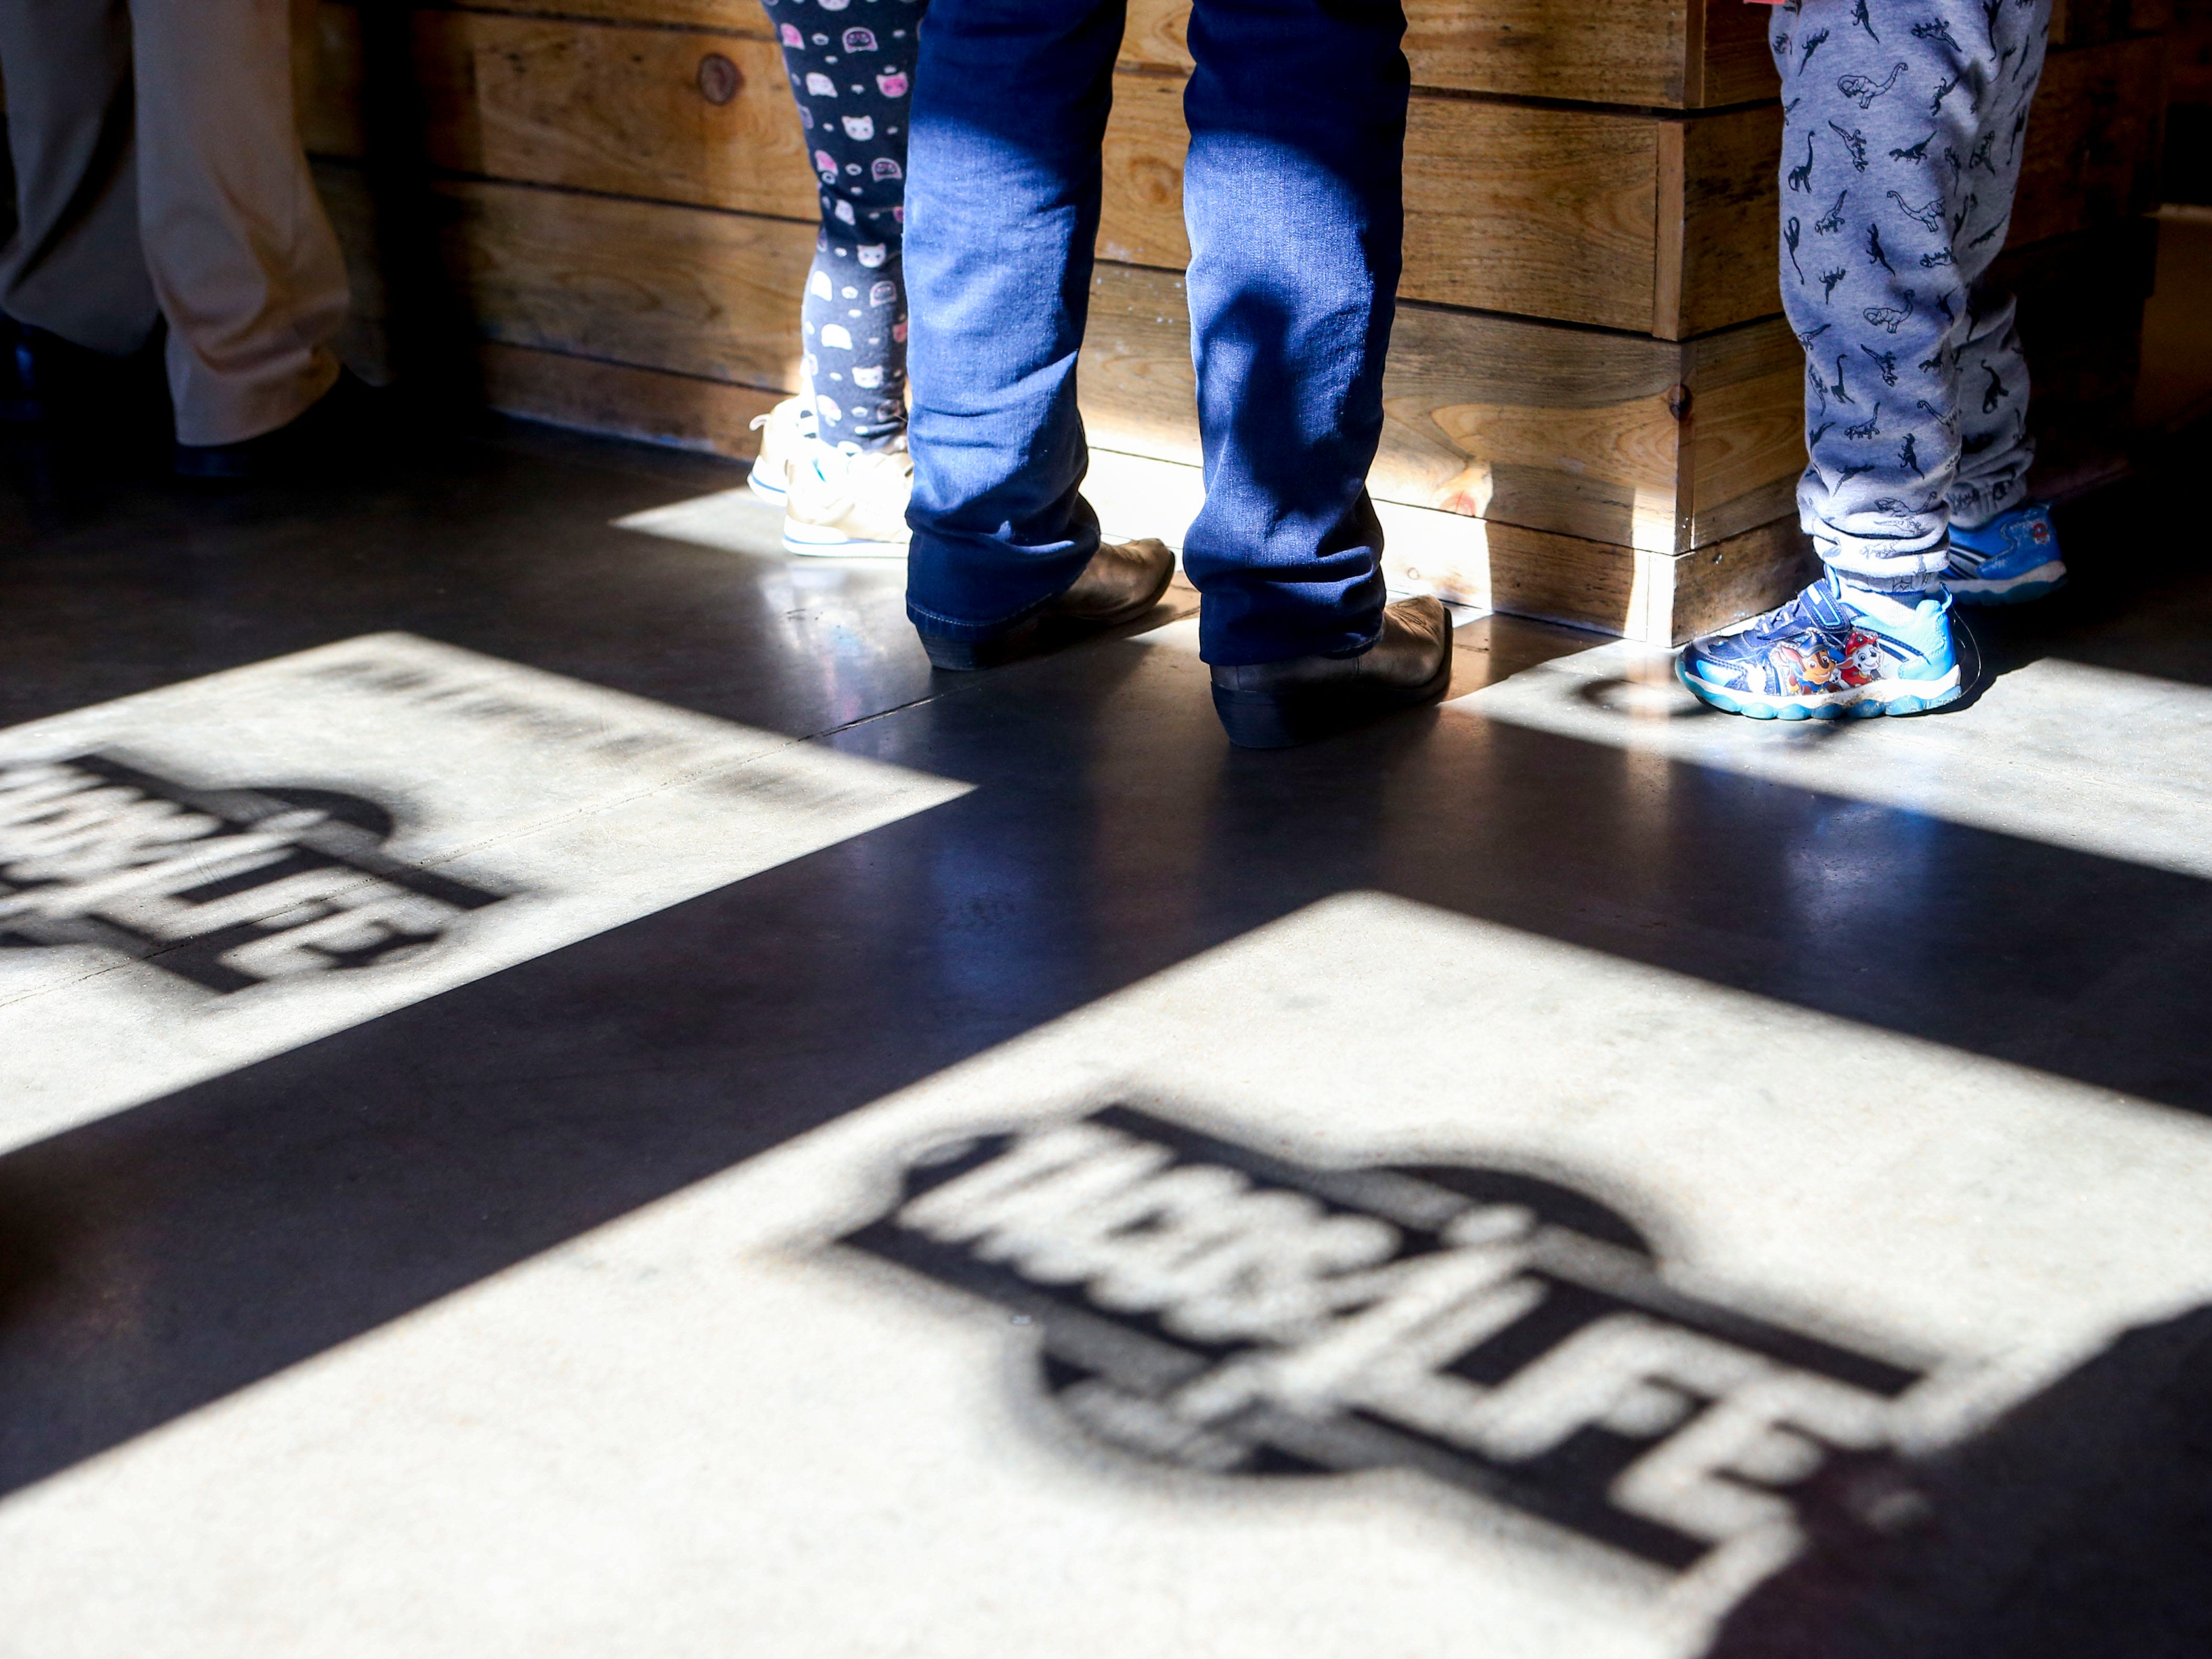 A family orders meals at the register during the soft opening at Tacos 4 Life, a new restaurant in Jackson, Tenn., on Monday, Oct. 29, 2018.